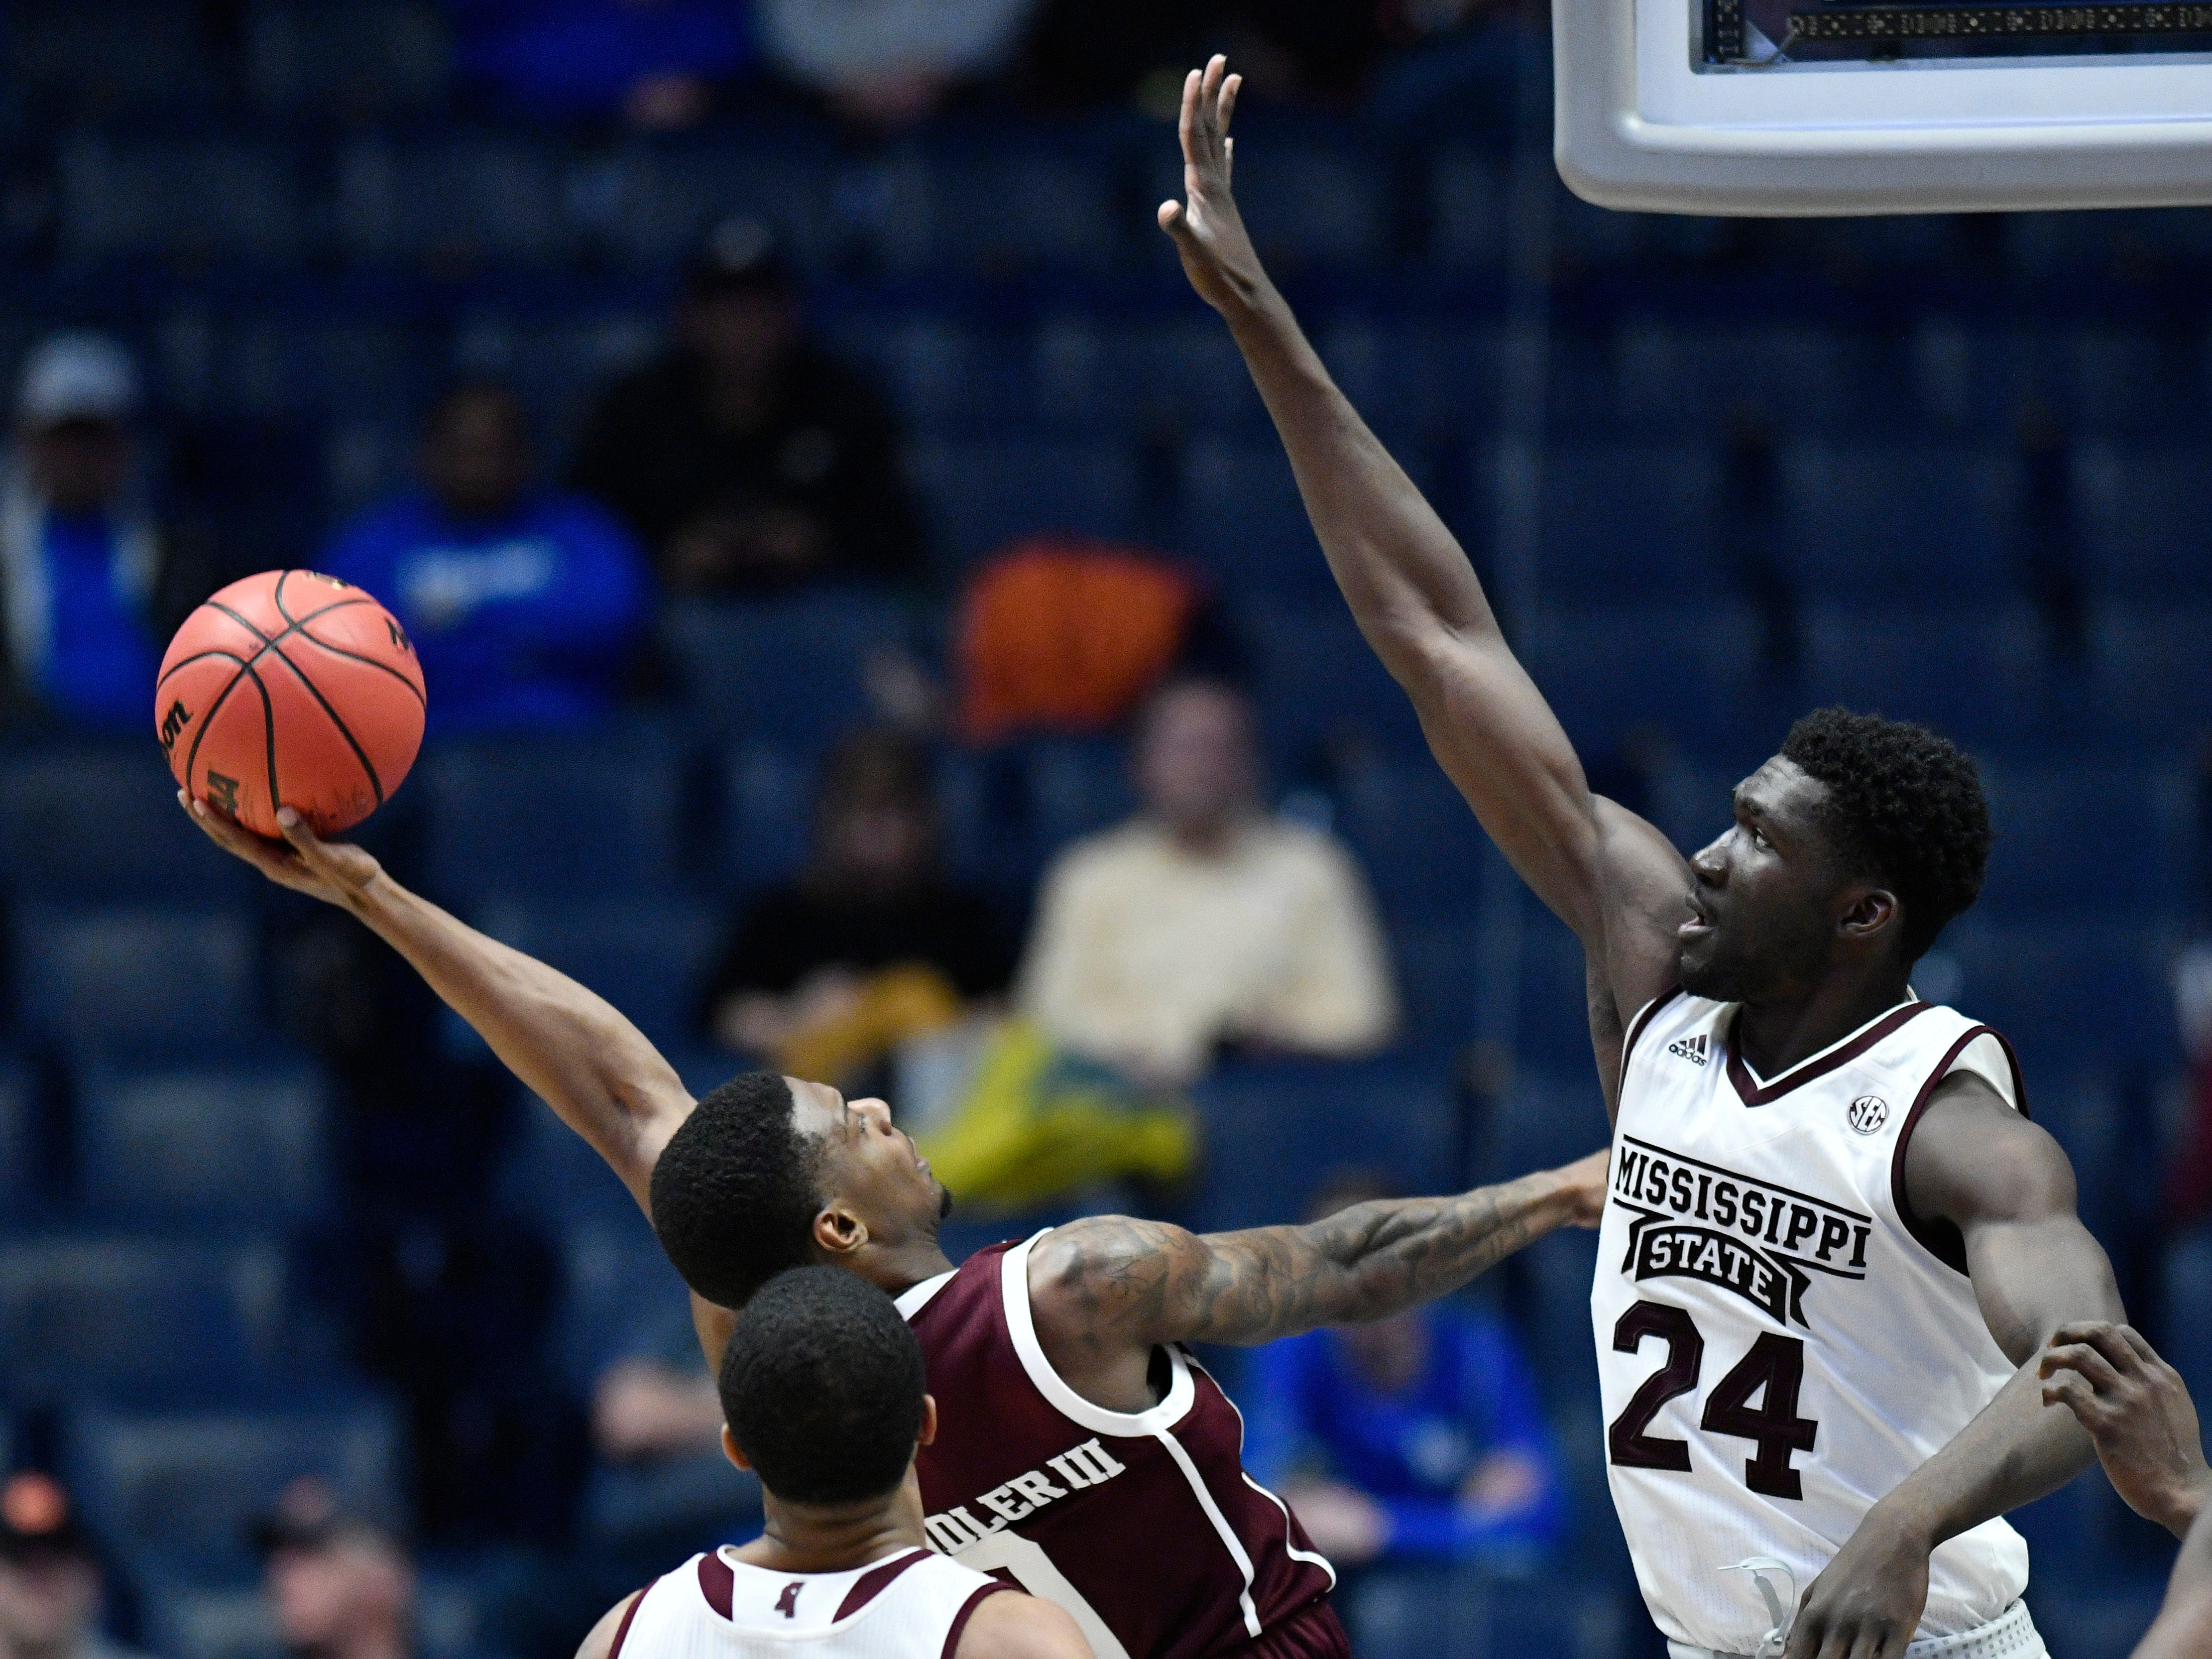 Texas A&M guard Jay Jay Chandler (0) shoots defended by Mississippi State forward Abdul Ado (24) during the secibd half of the SEC Men's Basketball Tournament game at Bridgestone Arena in Nashville, Tenn., Thursday, March 14, 2019.